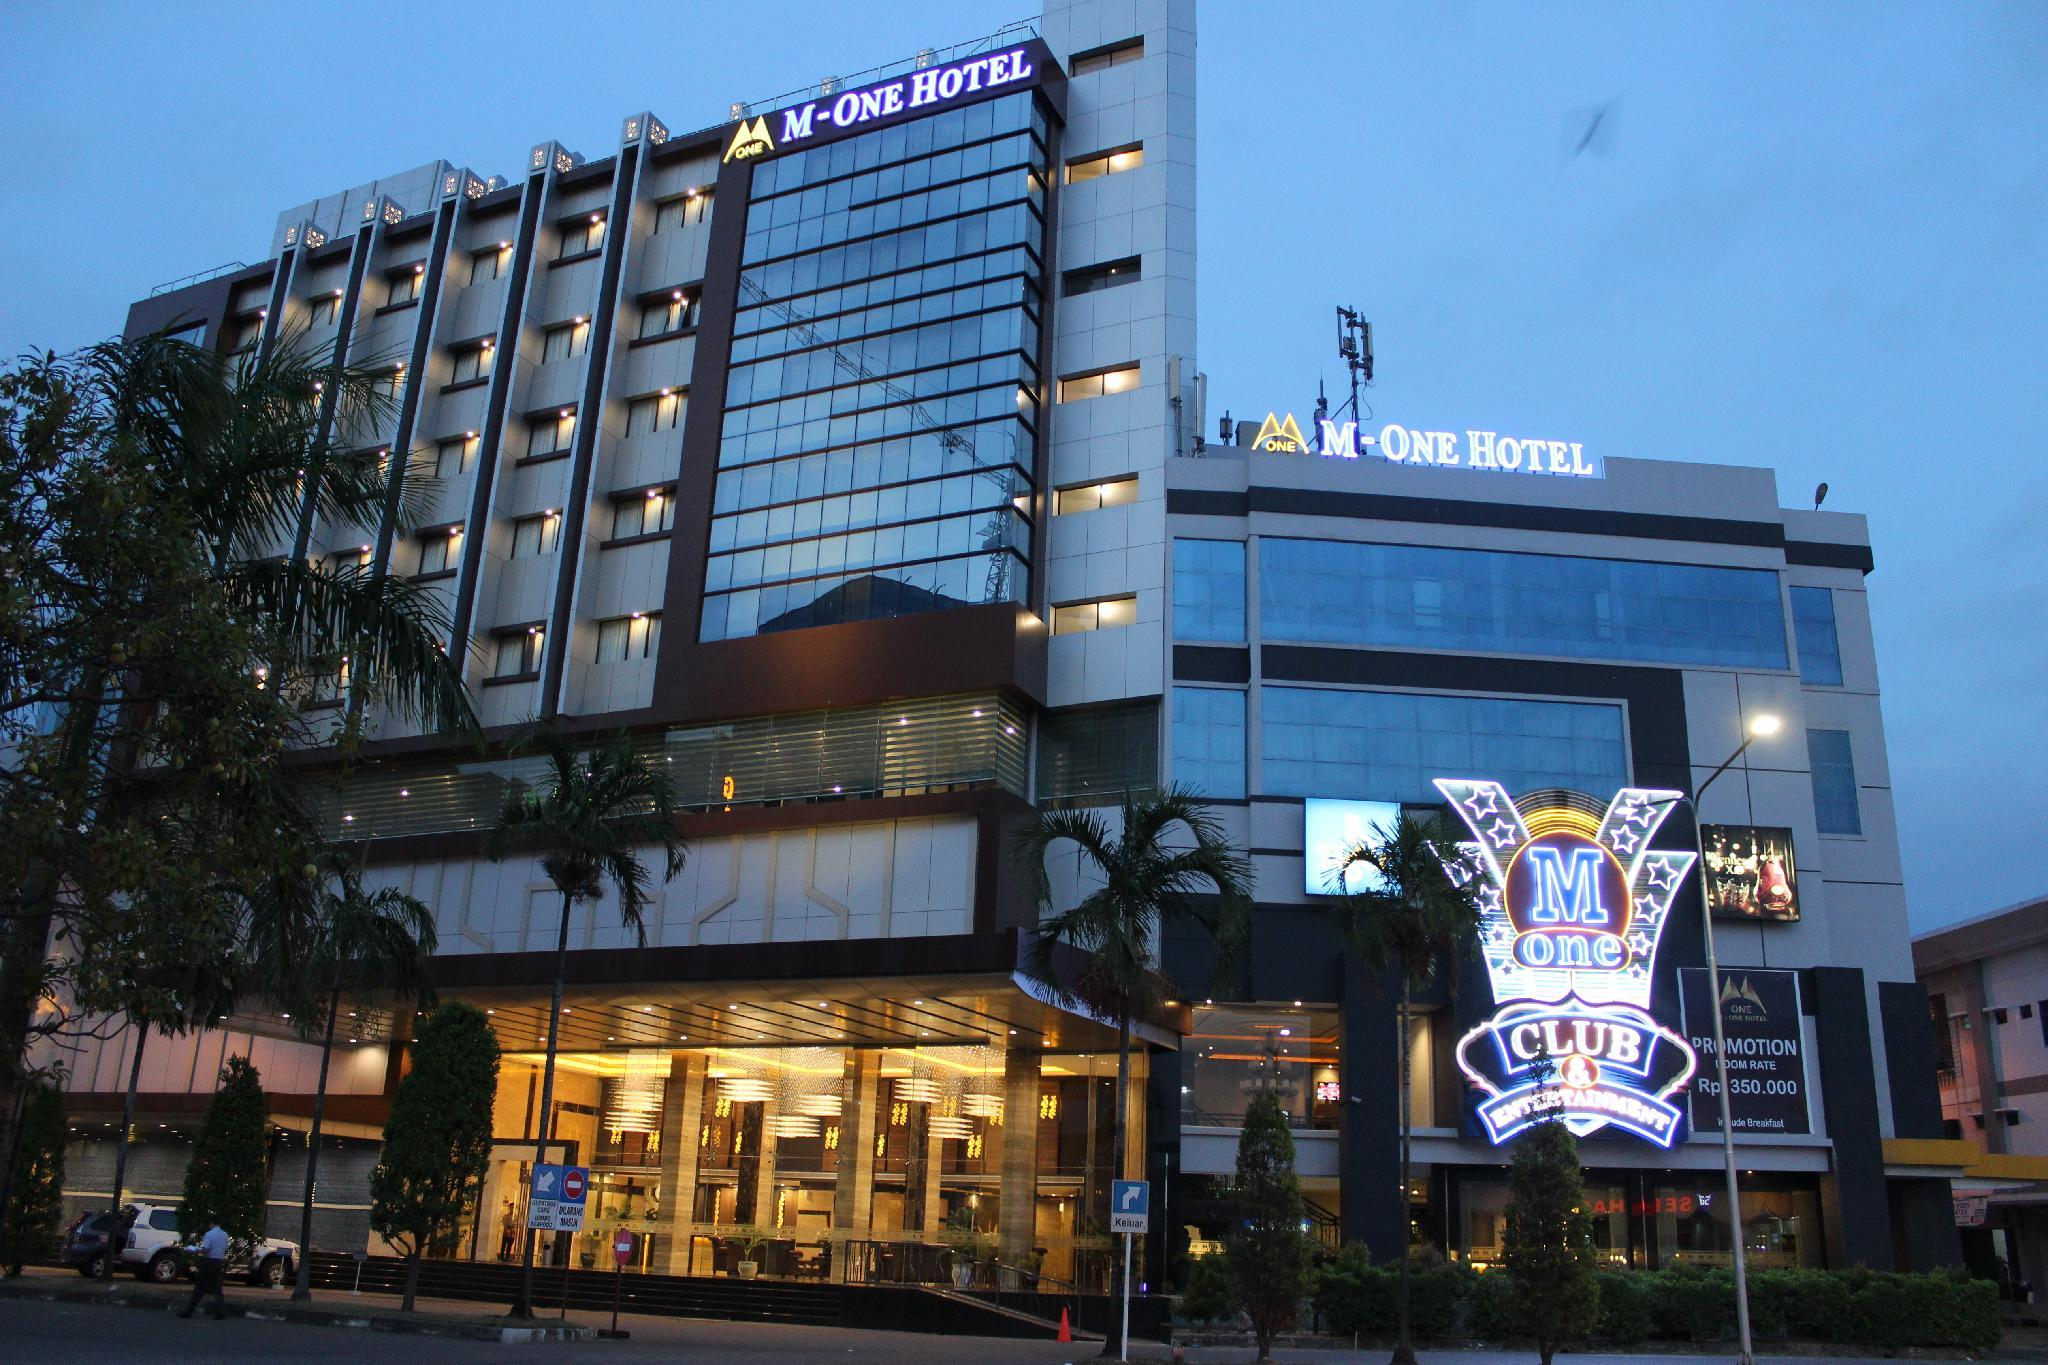 M One Hotel Harbour Bay